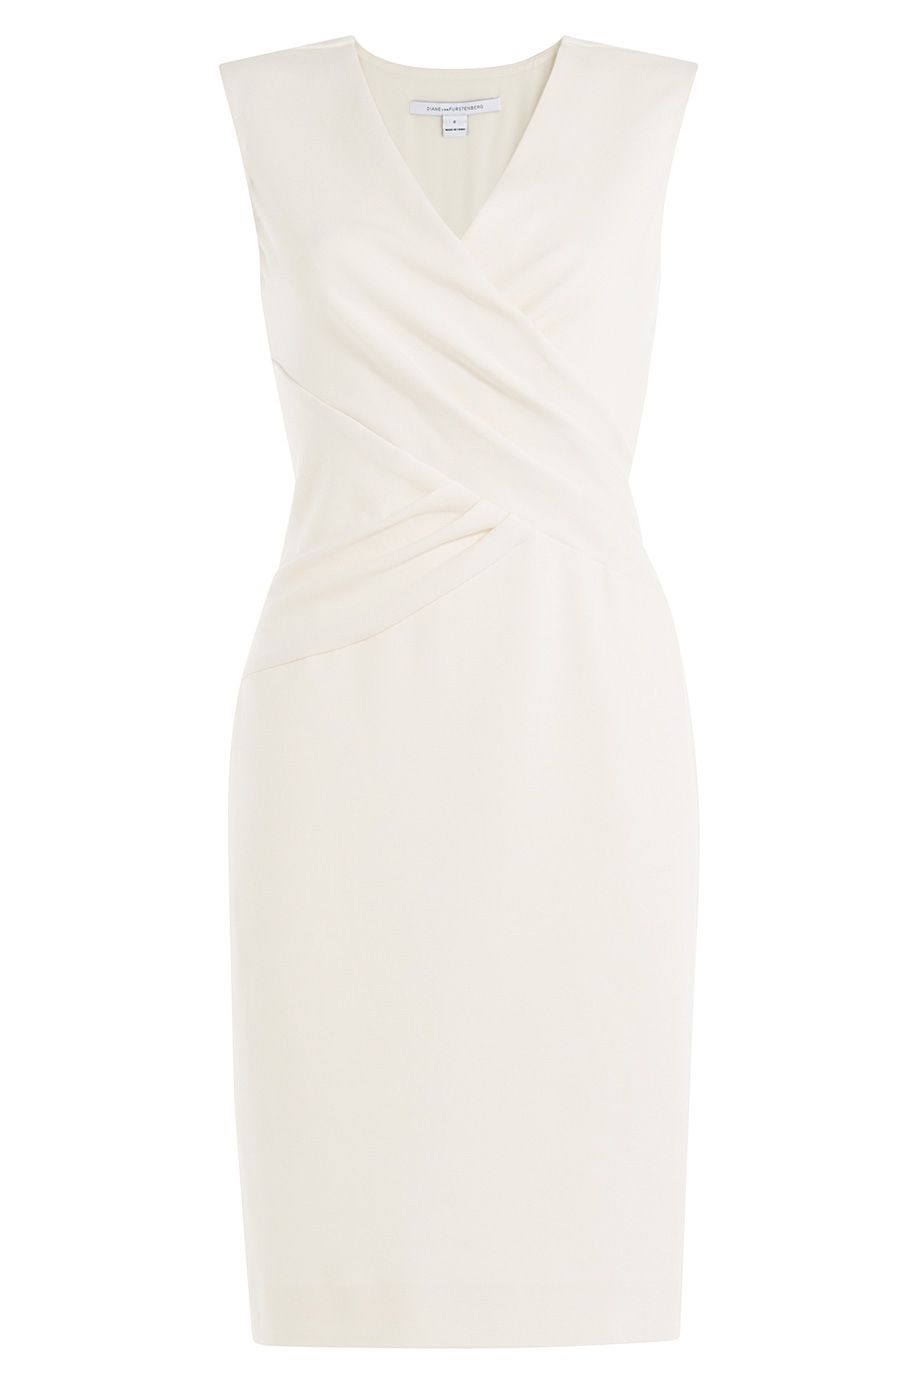 04a8a812 DIANE VON FURSTENBERG Tailored Sheath Dress. #dianevonfurstenberg #cloth  #cocktail & party